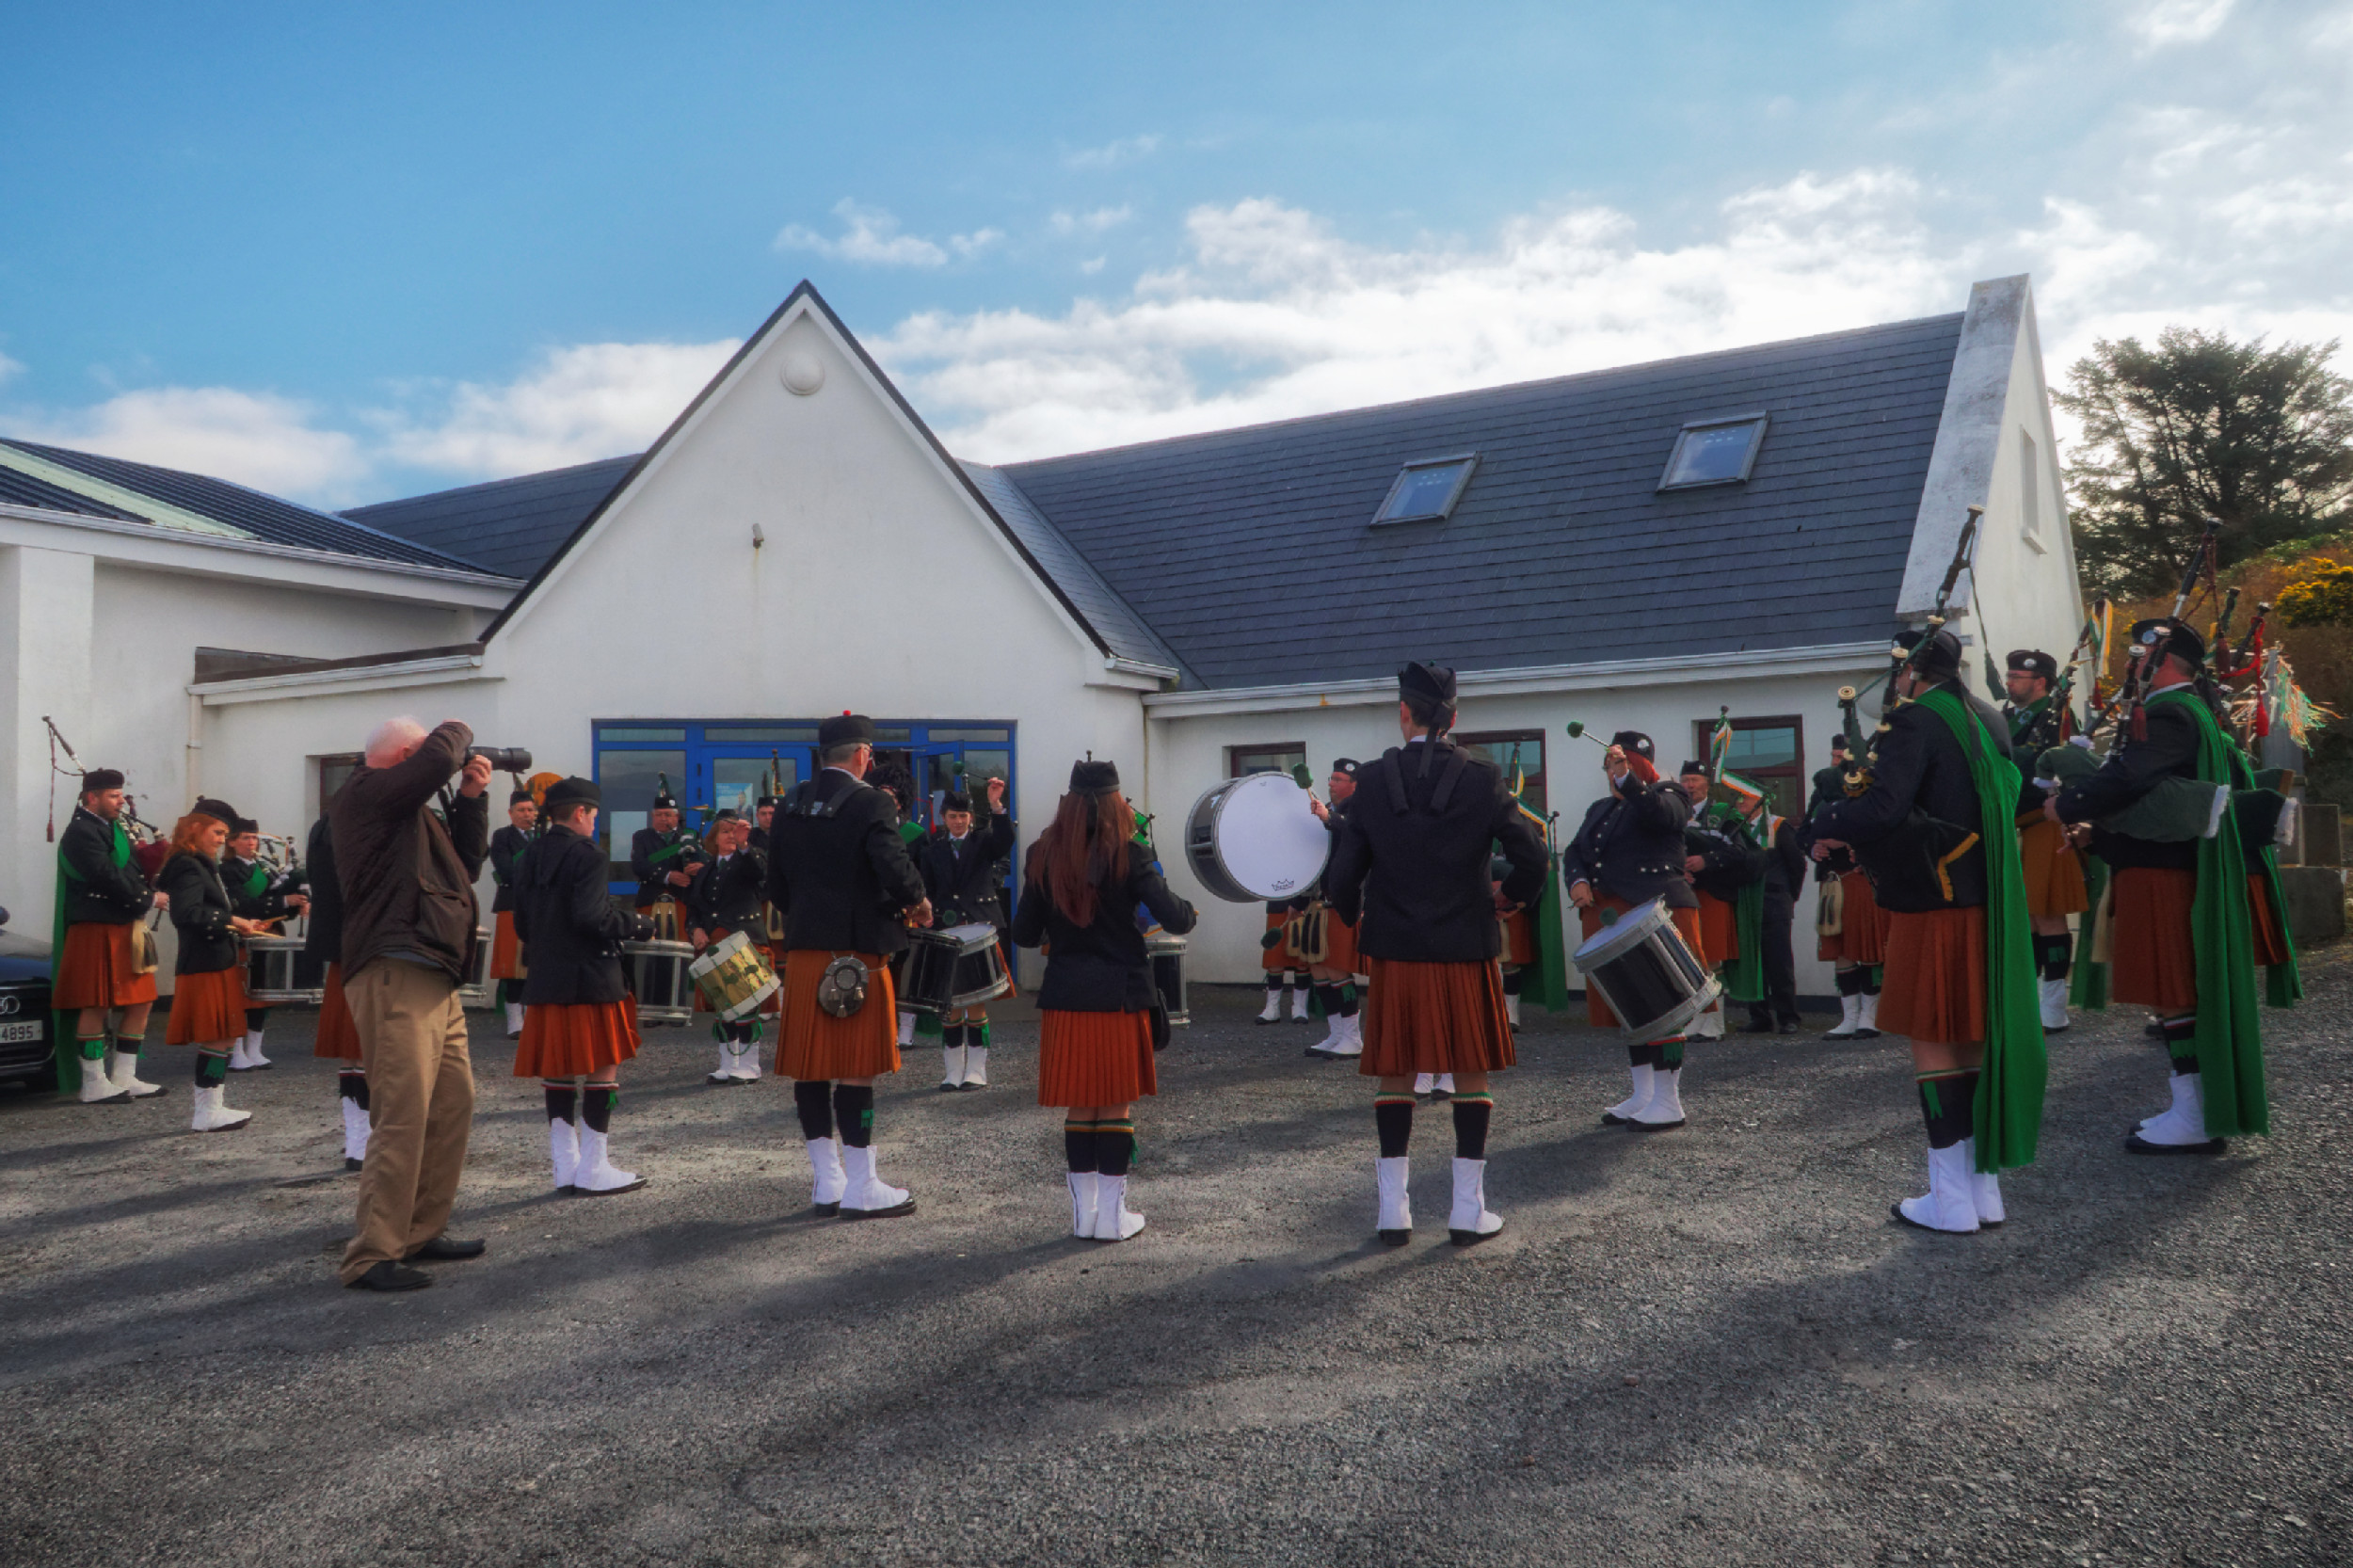 20160320131424-ie-achill-sound_parade-_DxO_13in_DxO96